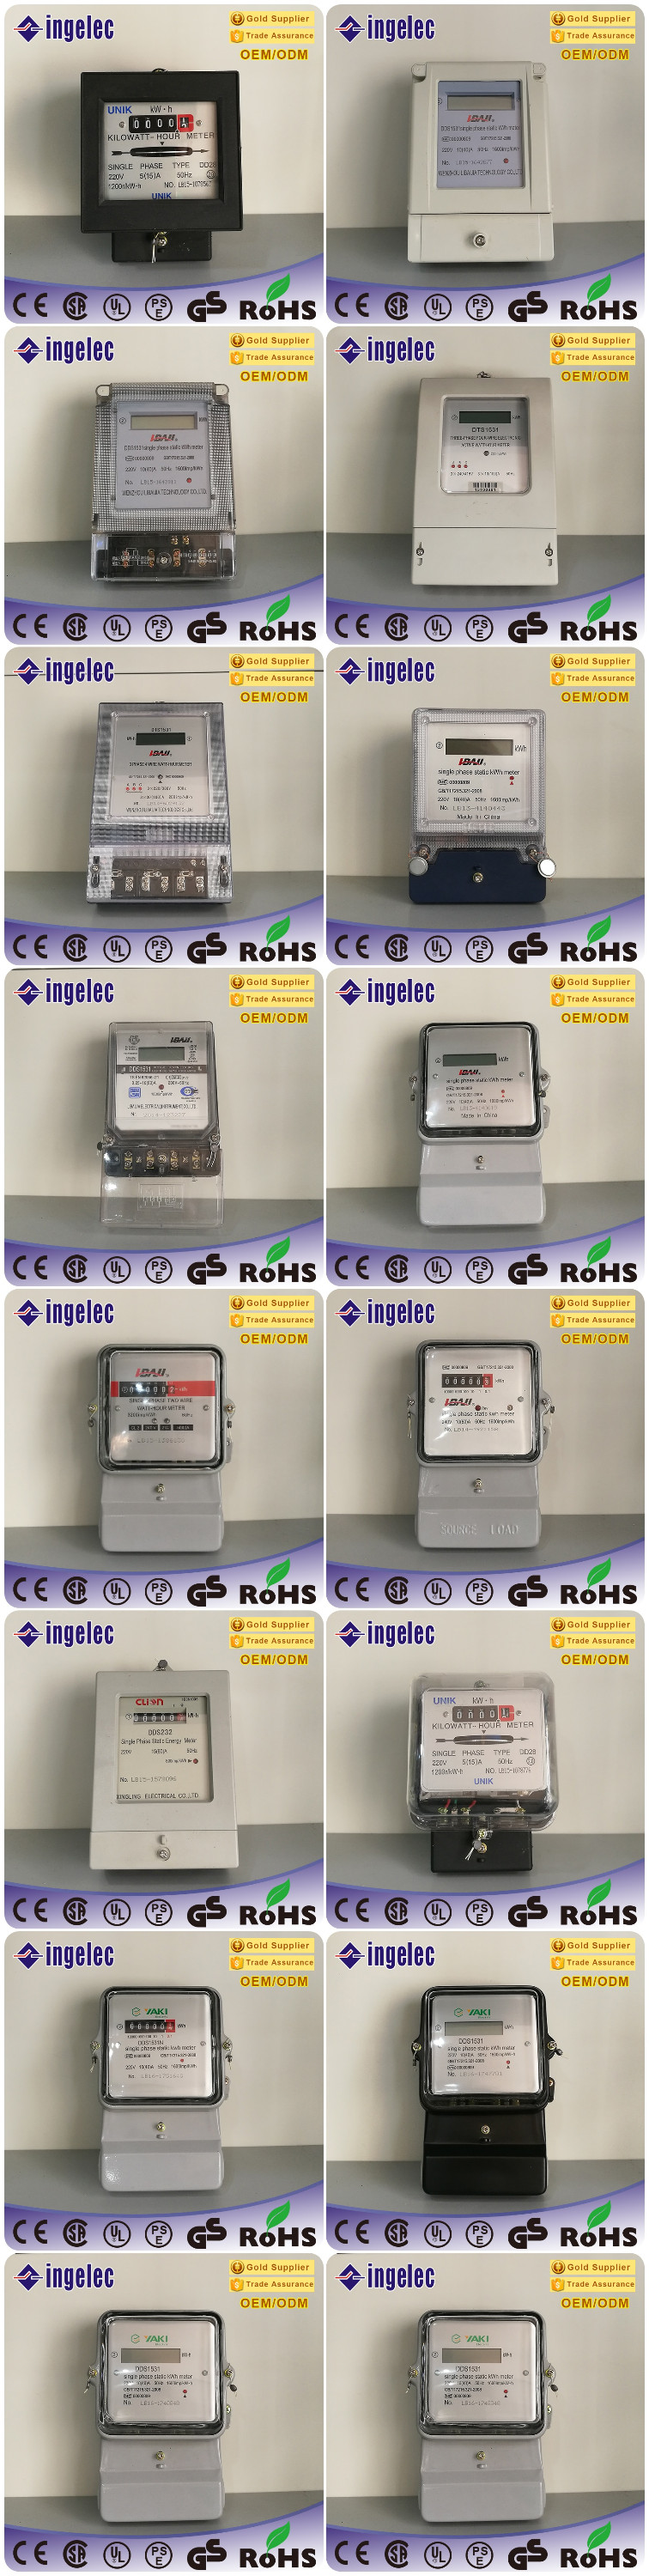 Electric Meter Jammersmart Ic Card Prepaid Electricity Buy Smart Power Solution Jammer